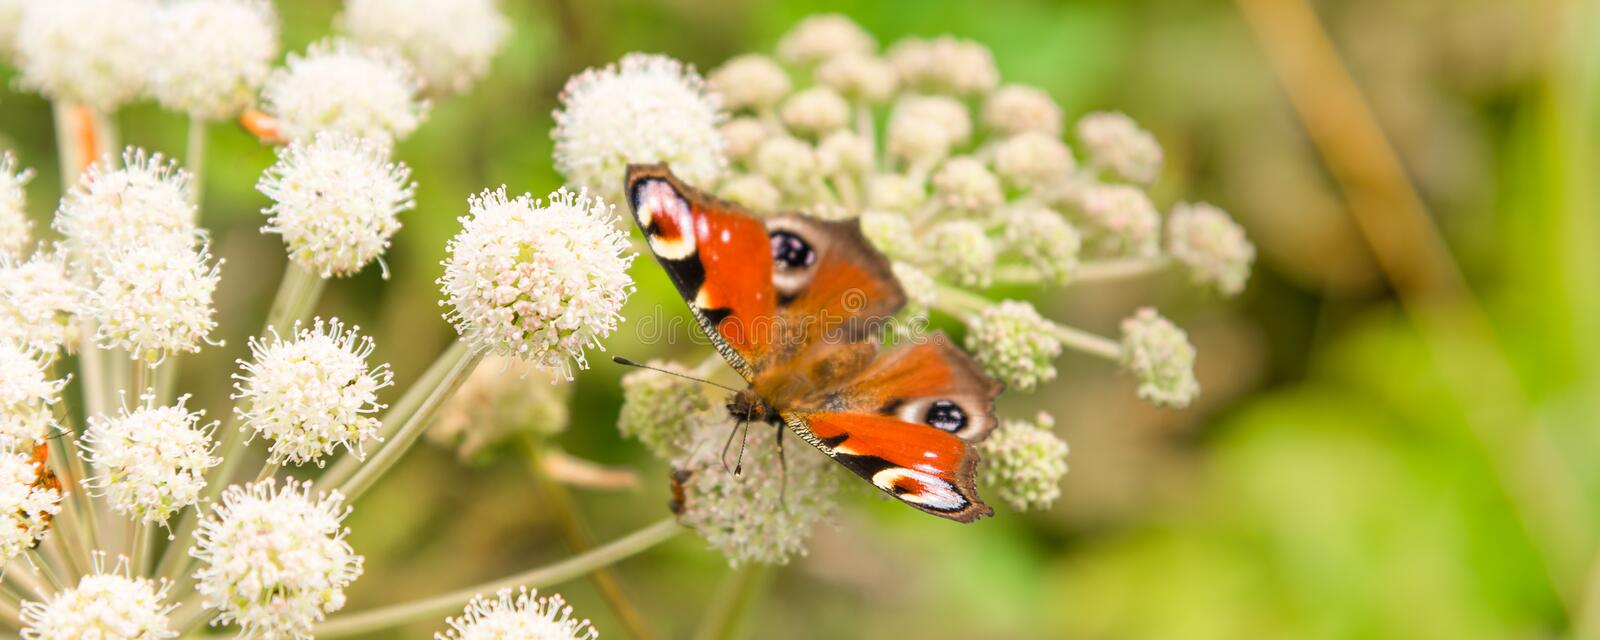 Banner with a peacock butterfly eye on a white wild flower on a meadow - macro royalty free stock photos